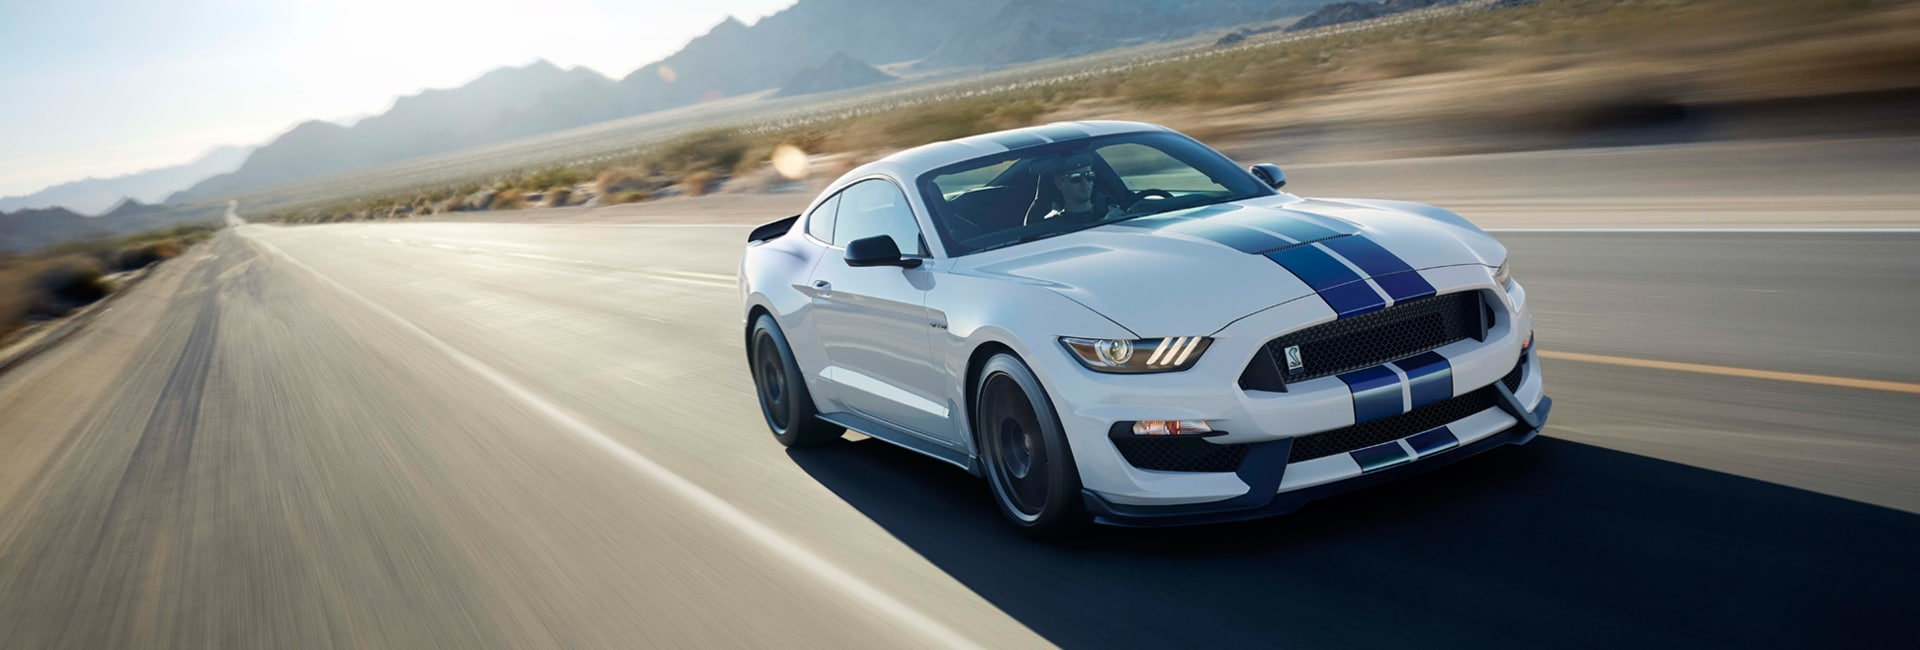 Ford Mustang Exterior Vehicle Features